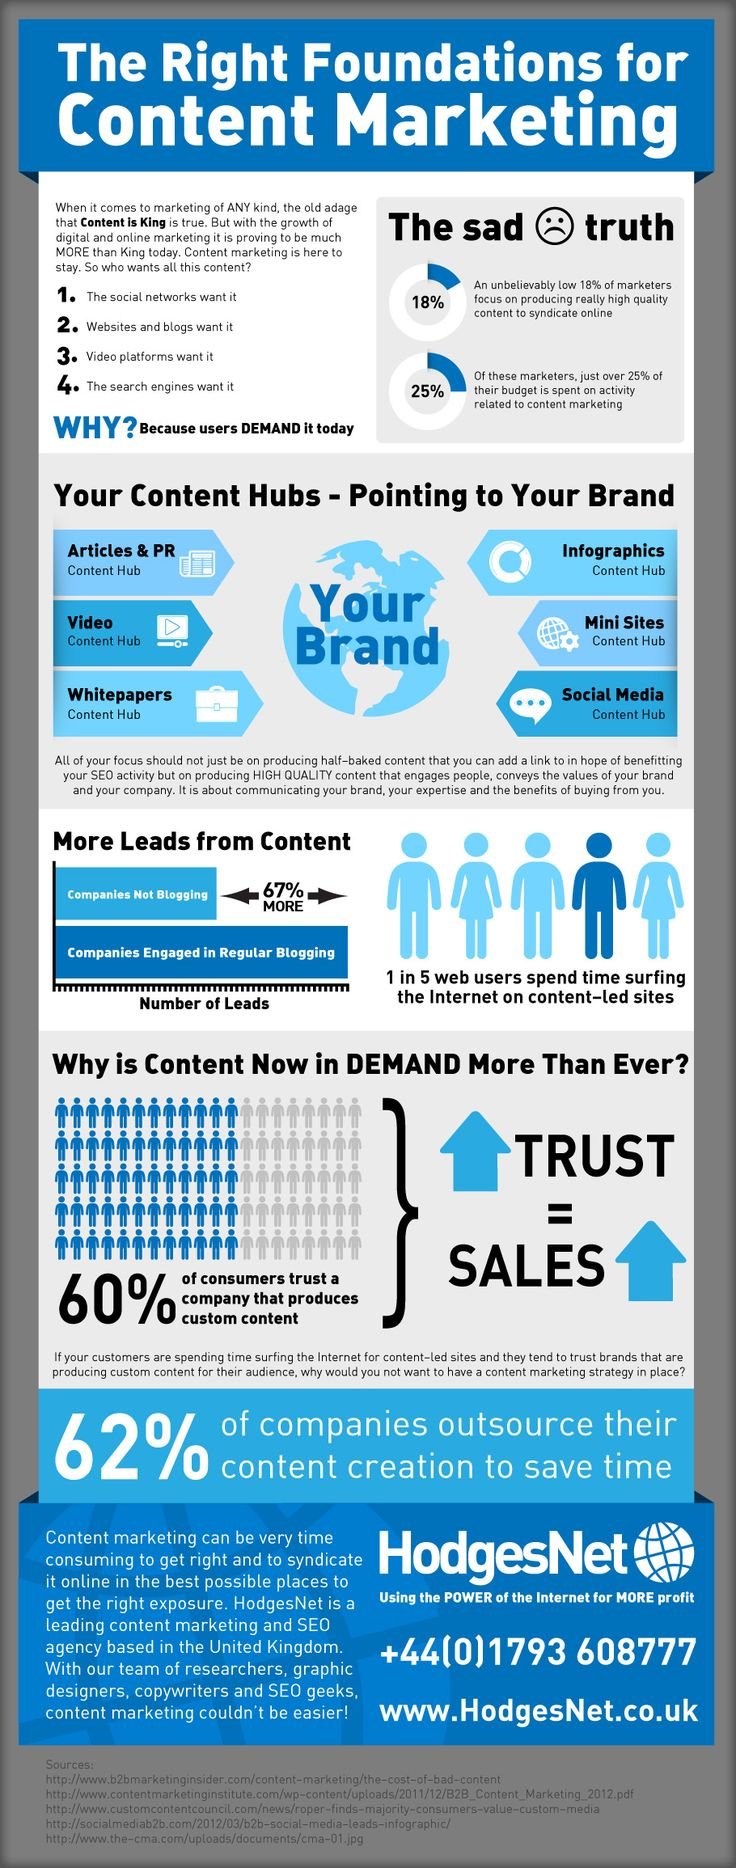 Content Marketing - The Foundations